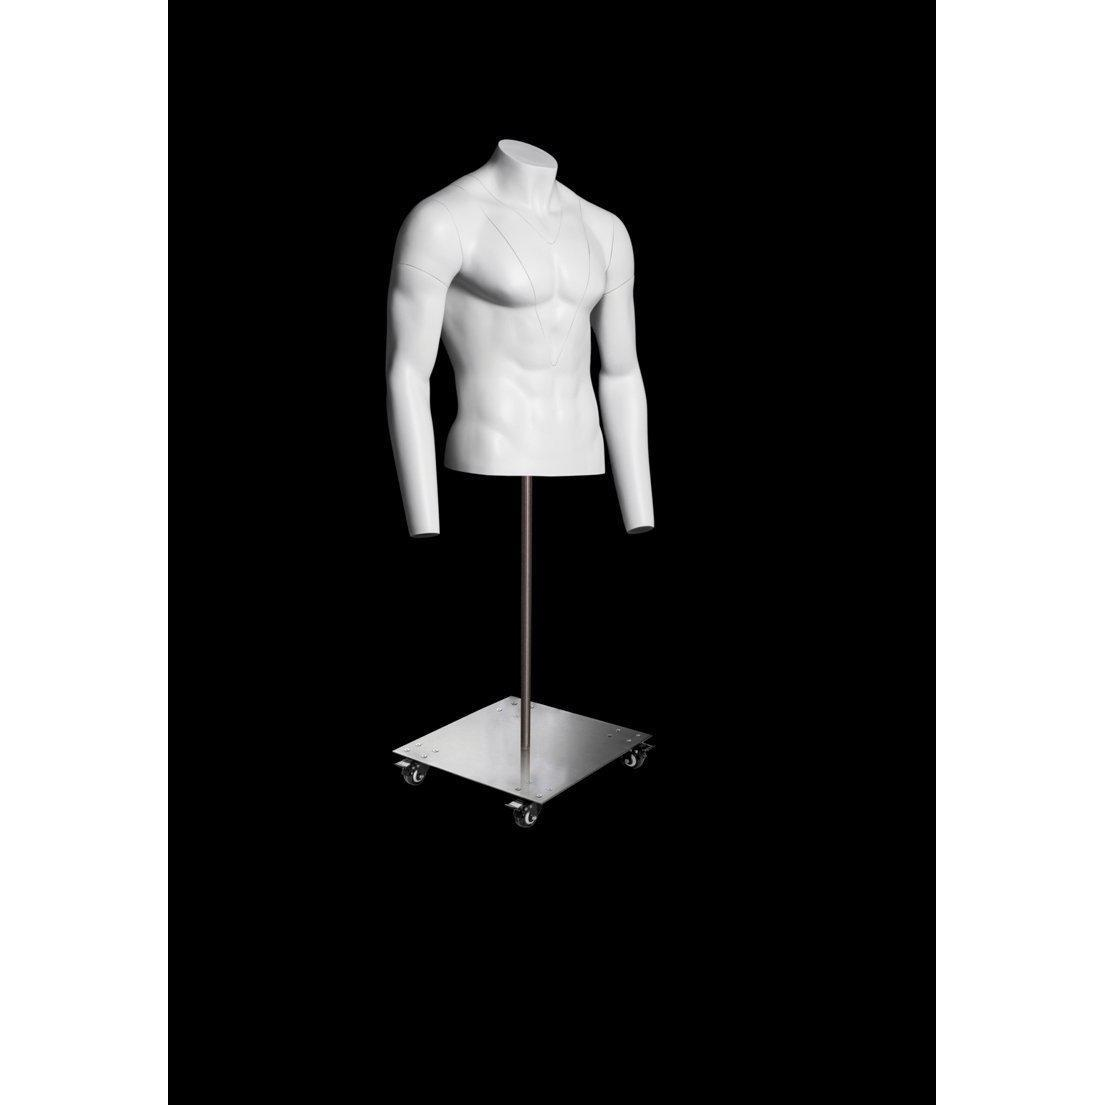 Only Hangers Female Torso Body Mannequin Form Waist Long Great for Small and Medium Sizes White Finish